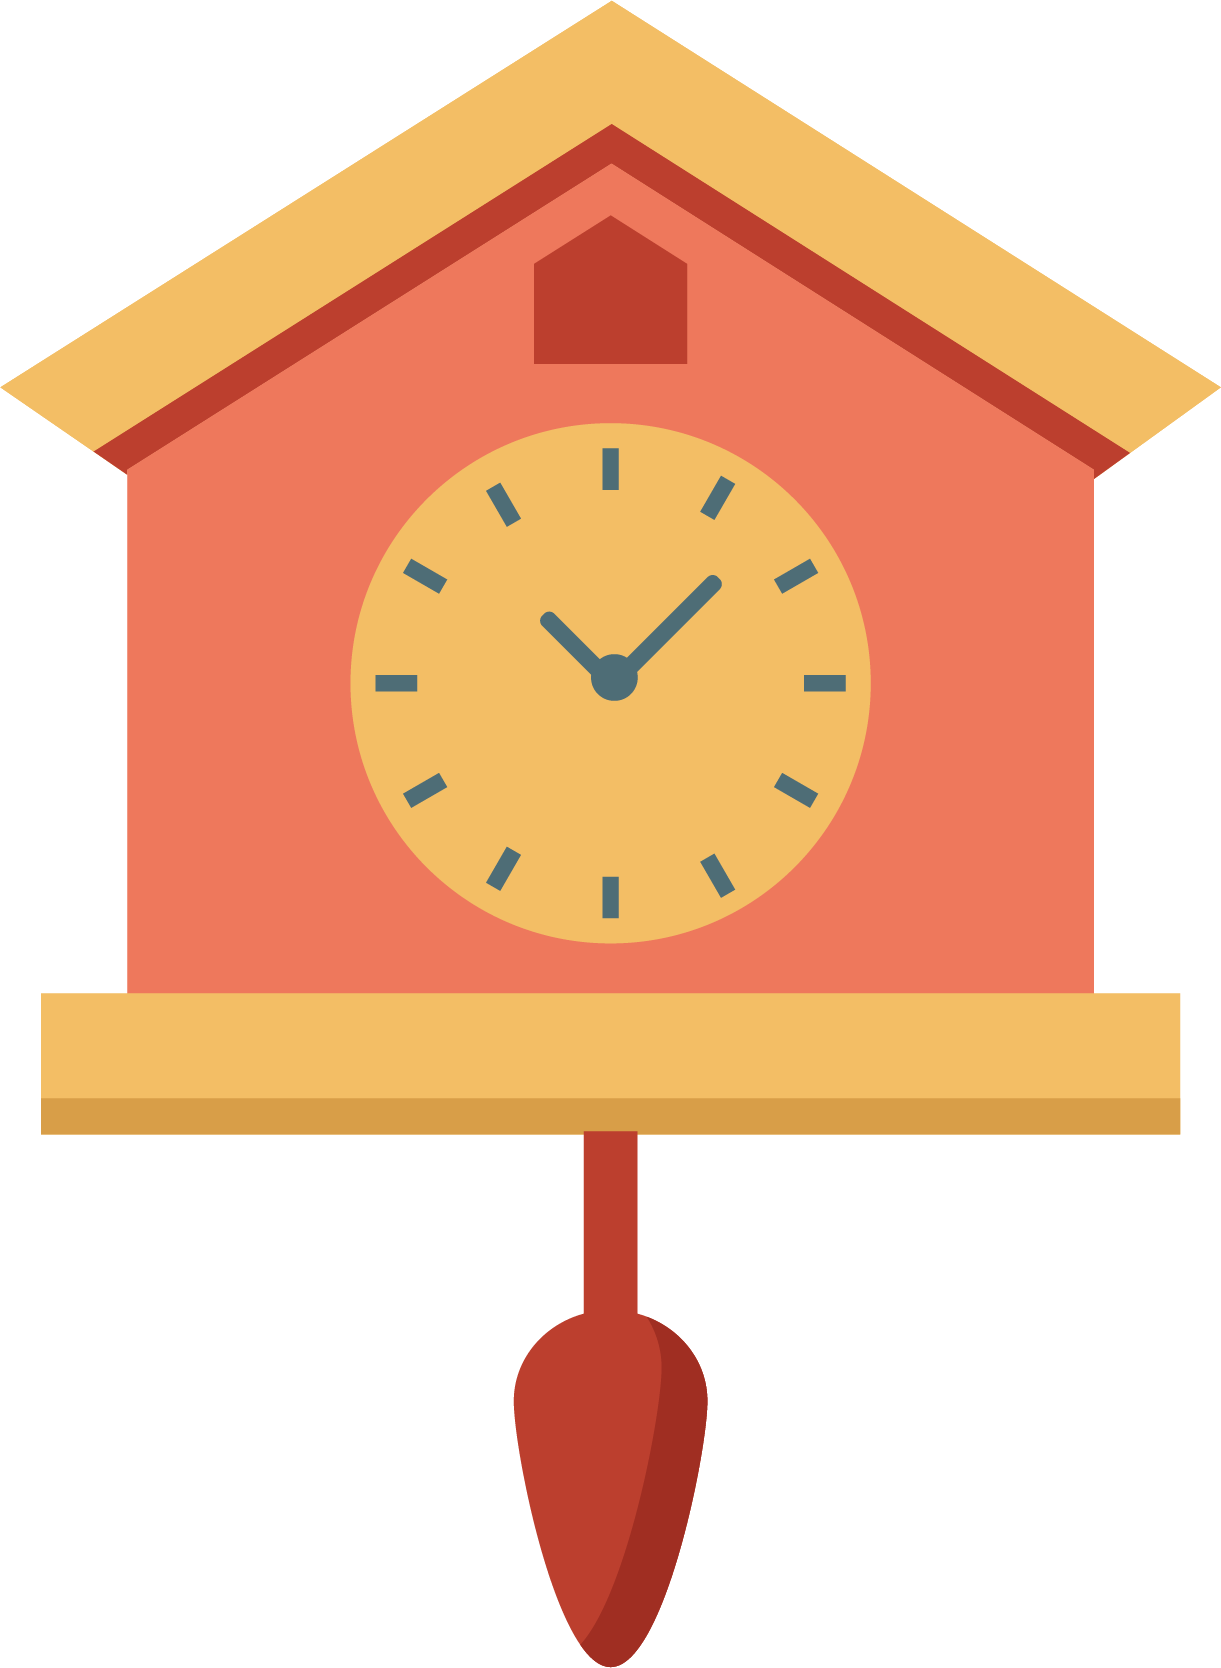 Furniture clipart home accessory. Time clock watch alarm